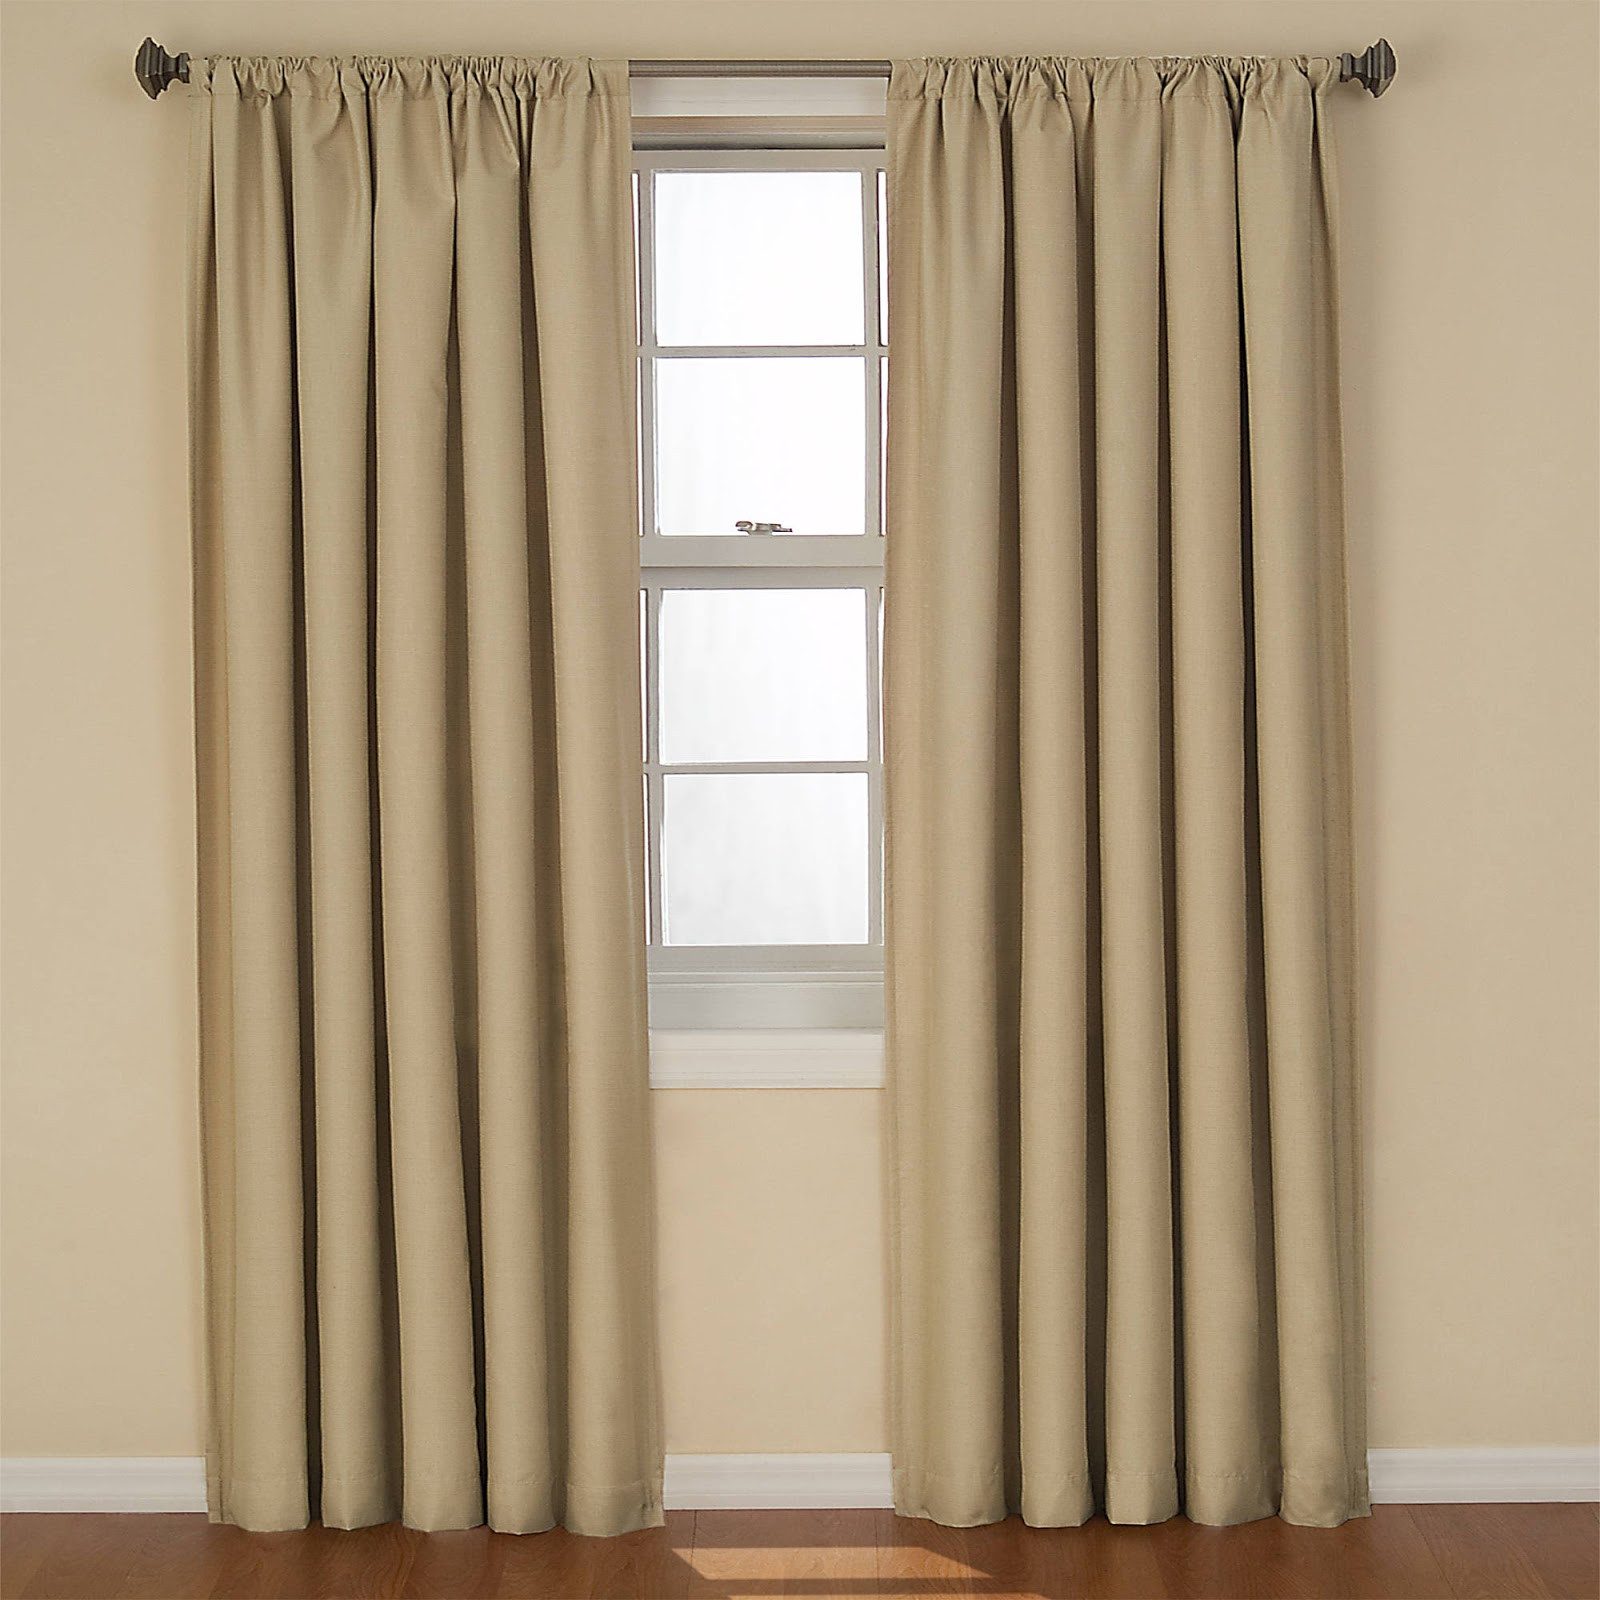 How To Drape A Curtain Scarf Over Rod Sheer Scarves